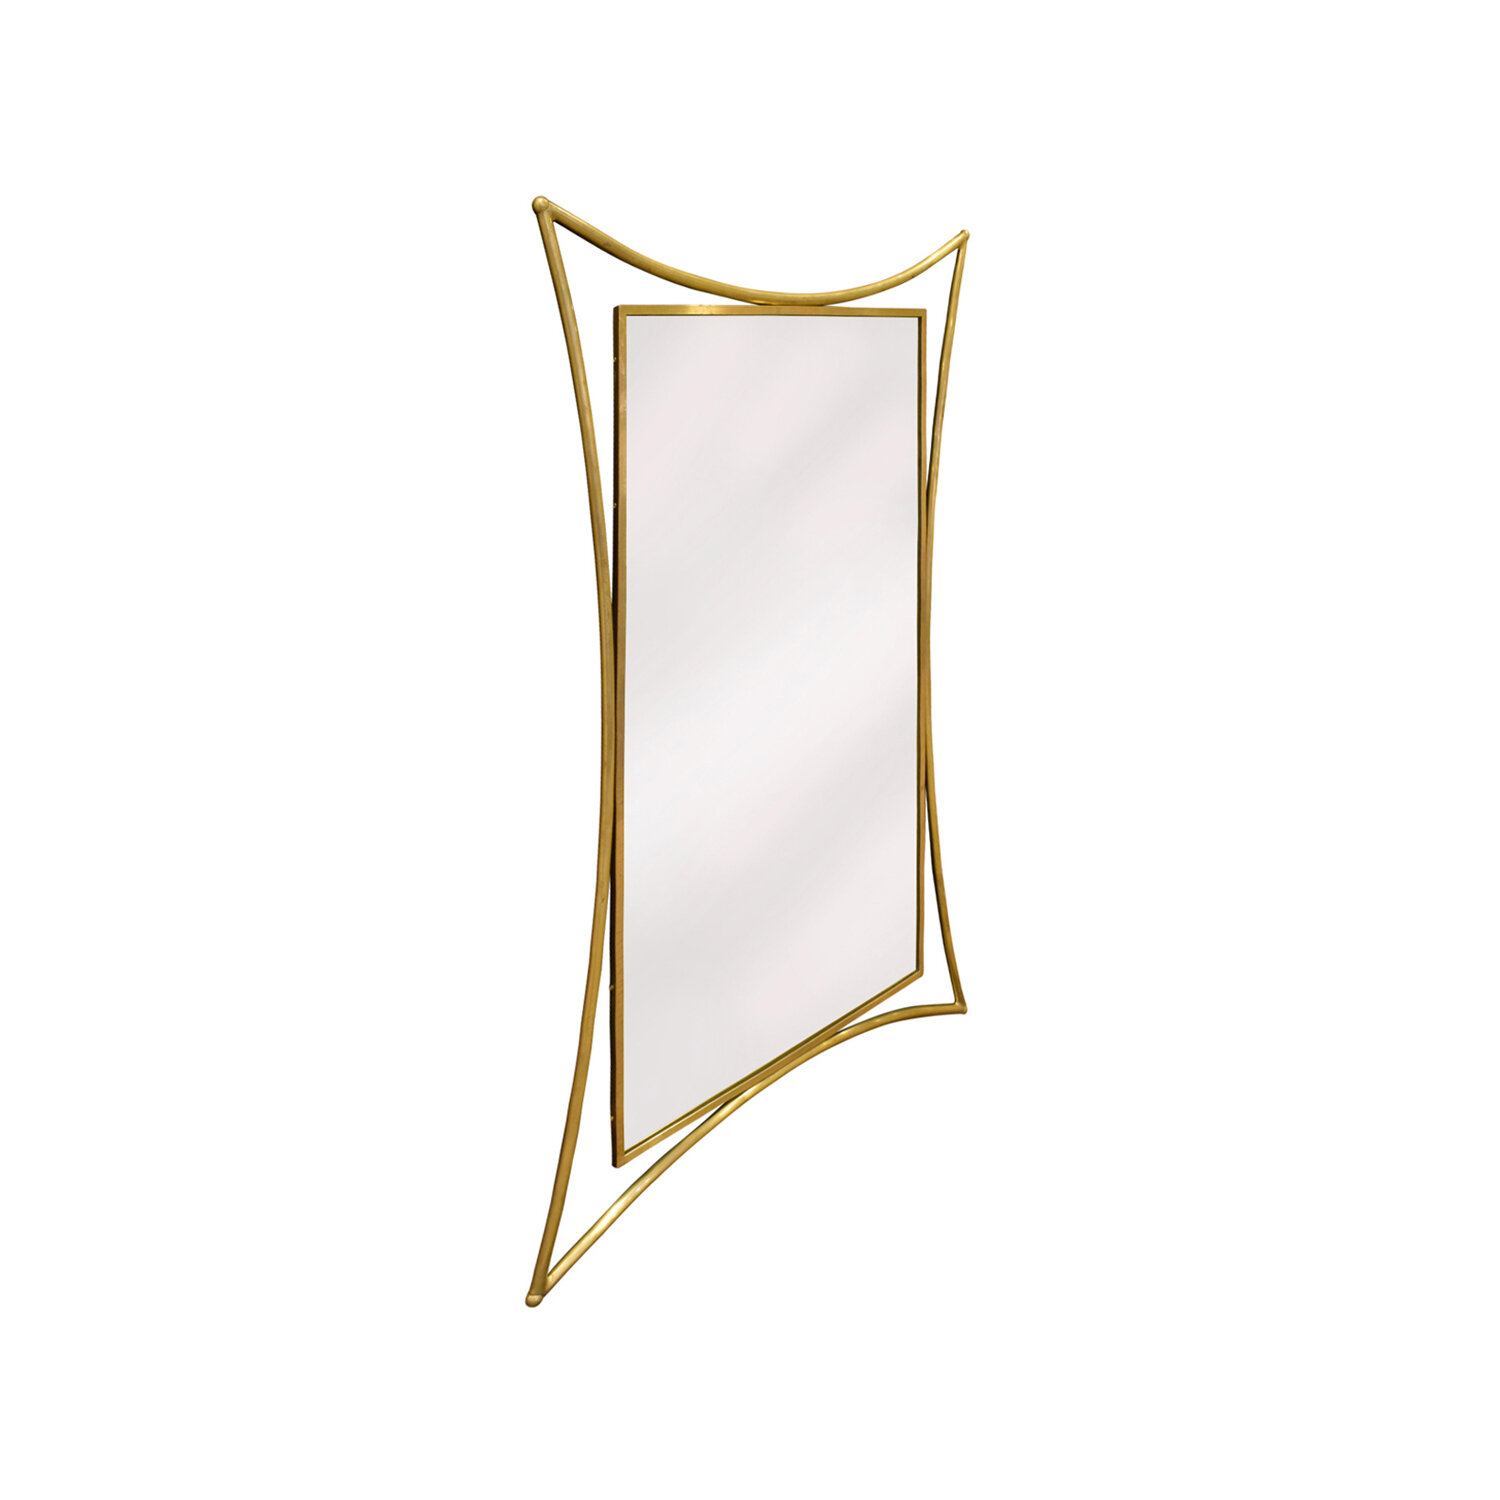 70s 55 Brutalist curved brass mirror199 angle.jpg